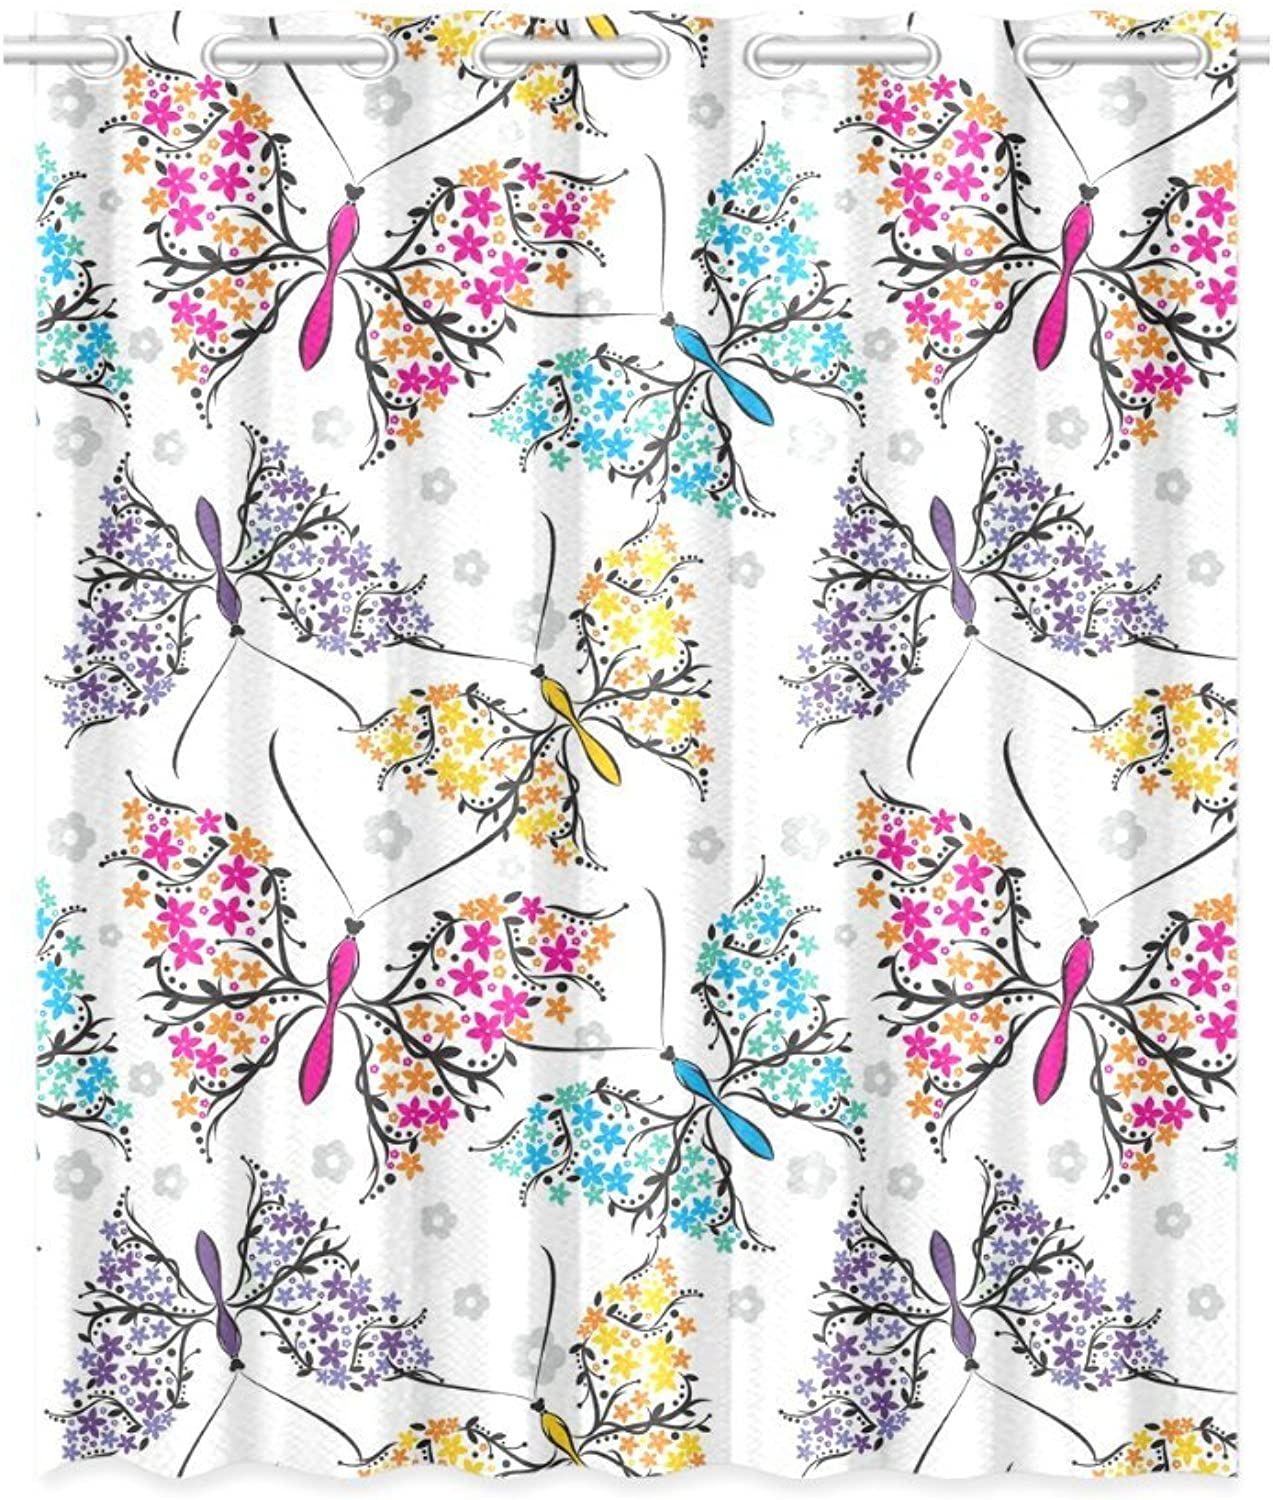 InterestPrint Blackout Window Curtain Butterflies Pattern Room Bedroom Kitchen Home Living Solid Grommet Window Drapes Curtain 52x63 Inch